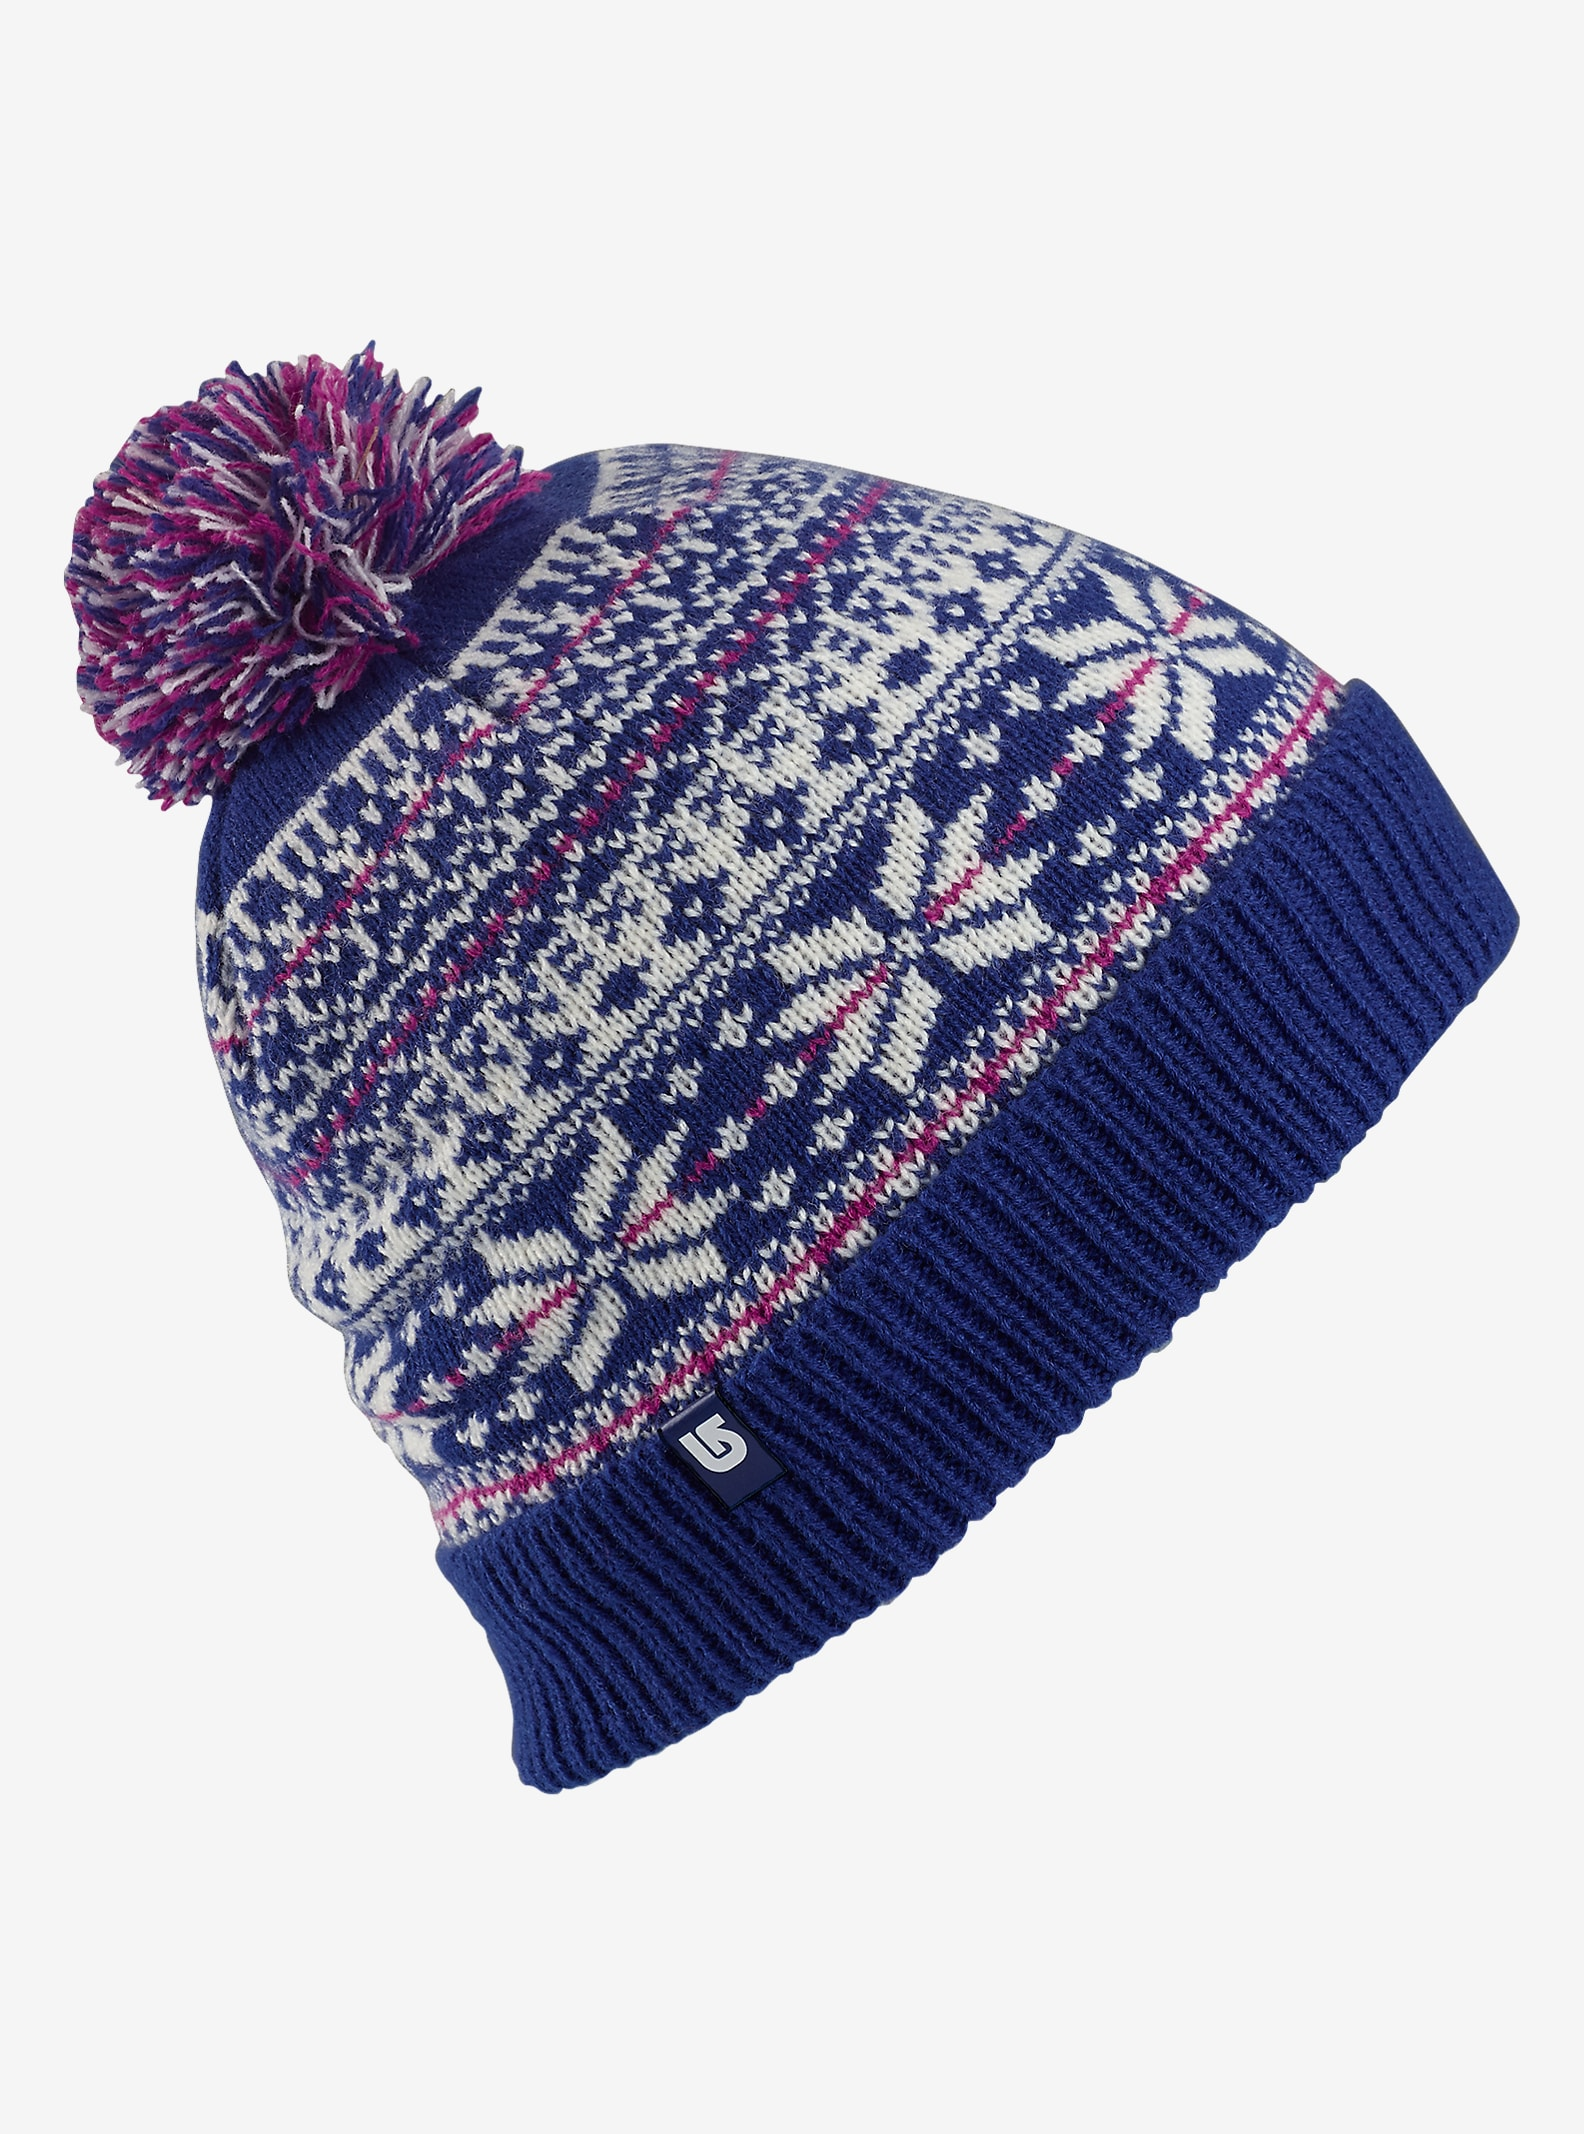 Burton Girls' McKennzie Beanie shown in Sorcerer